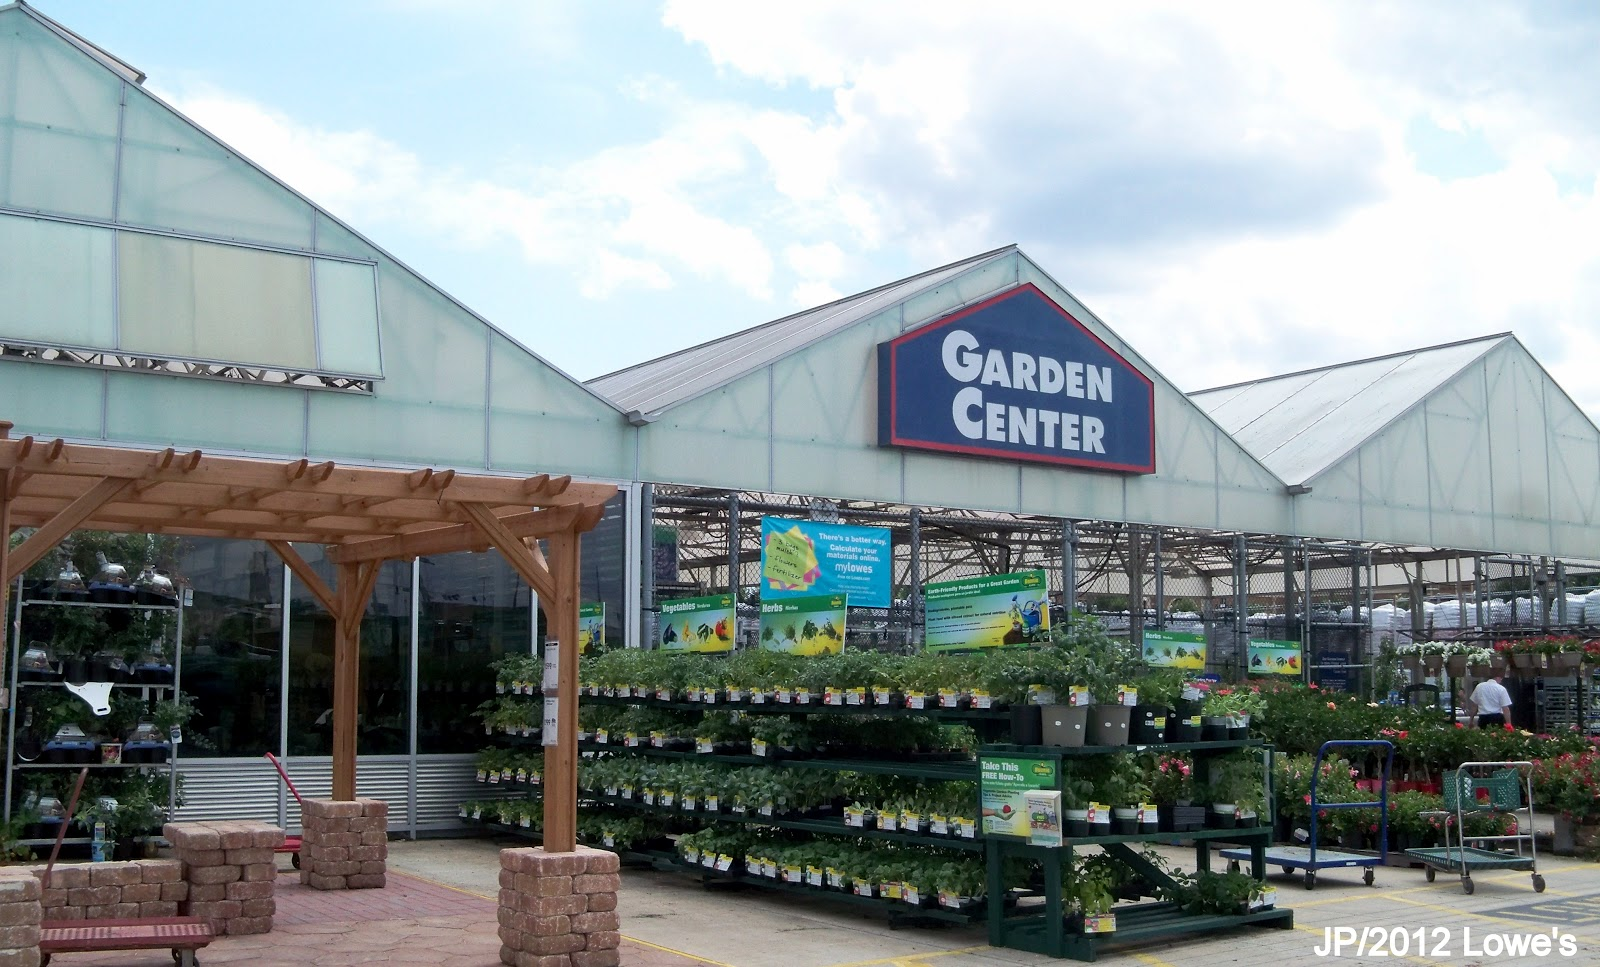 Magnificent Lowe's Home Improvement Garden Center 1600 x 967 · 341 kB · jpeg